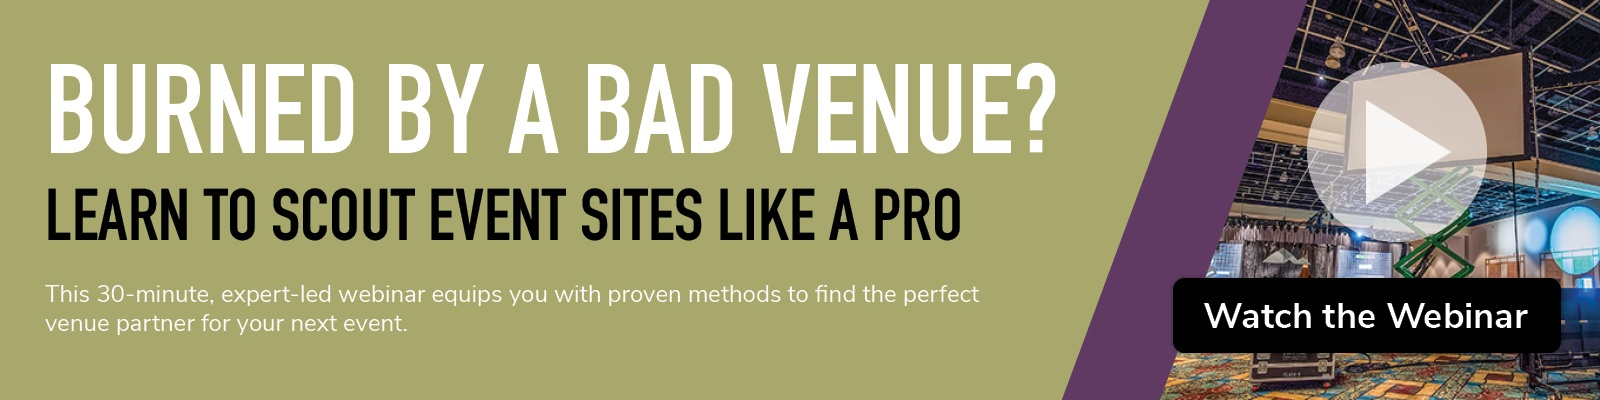 burned by a bad venue? learn to scout event sites like a pro; watch the webinar